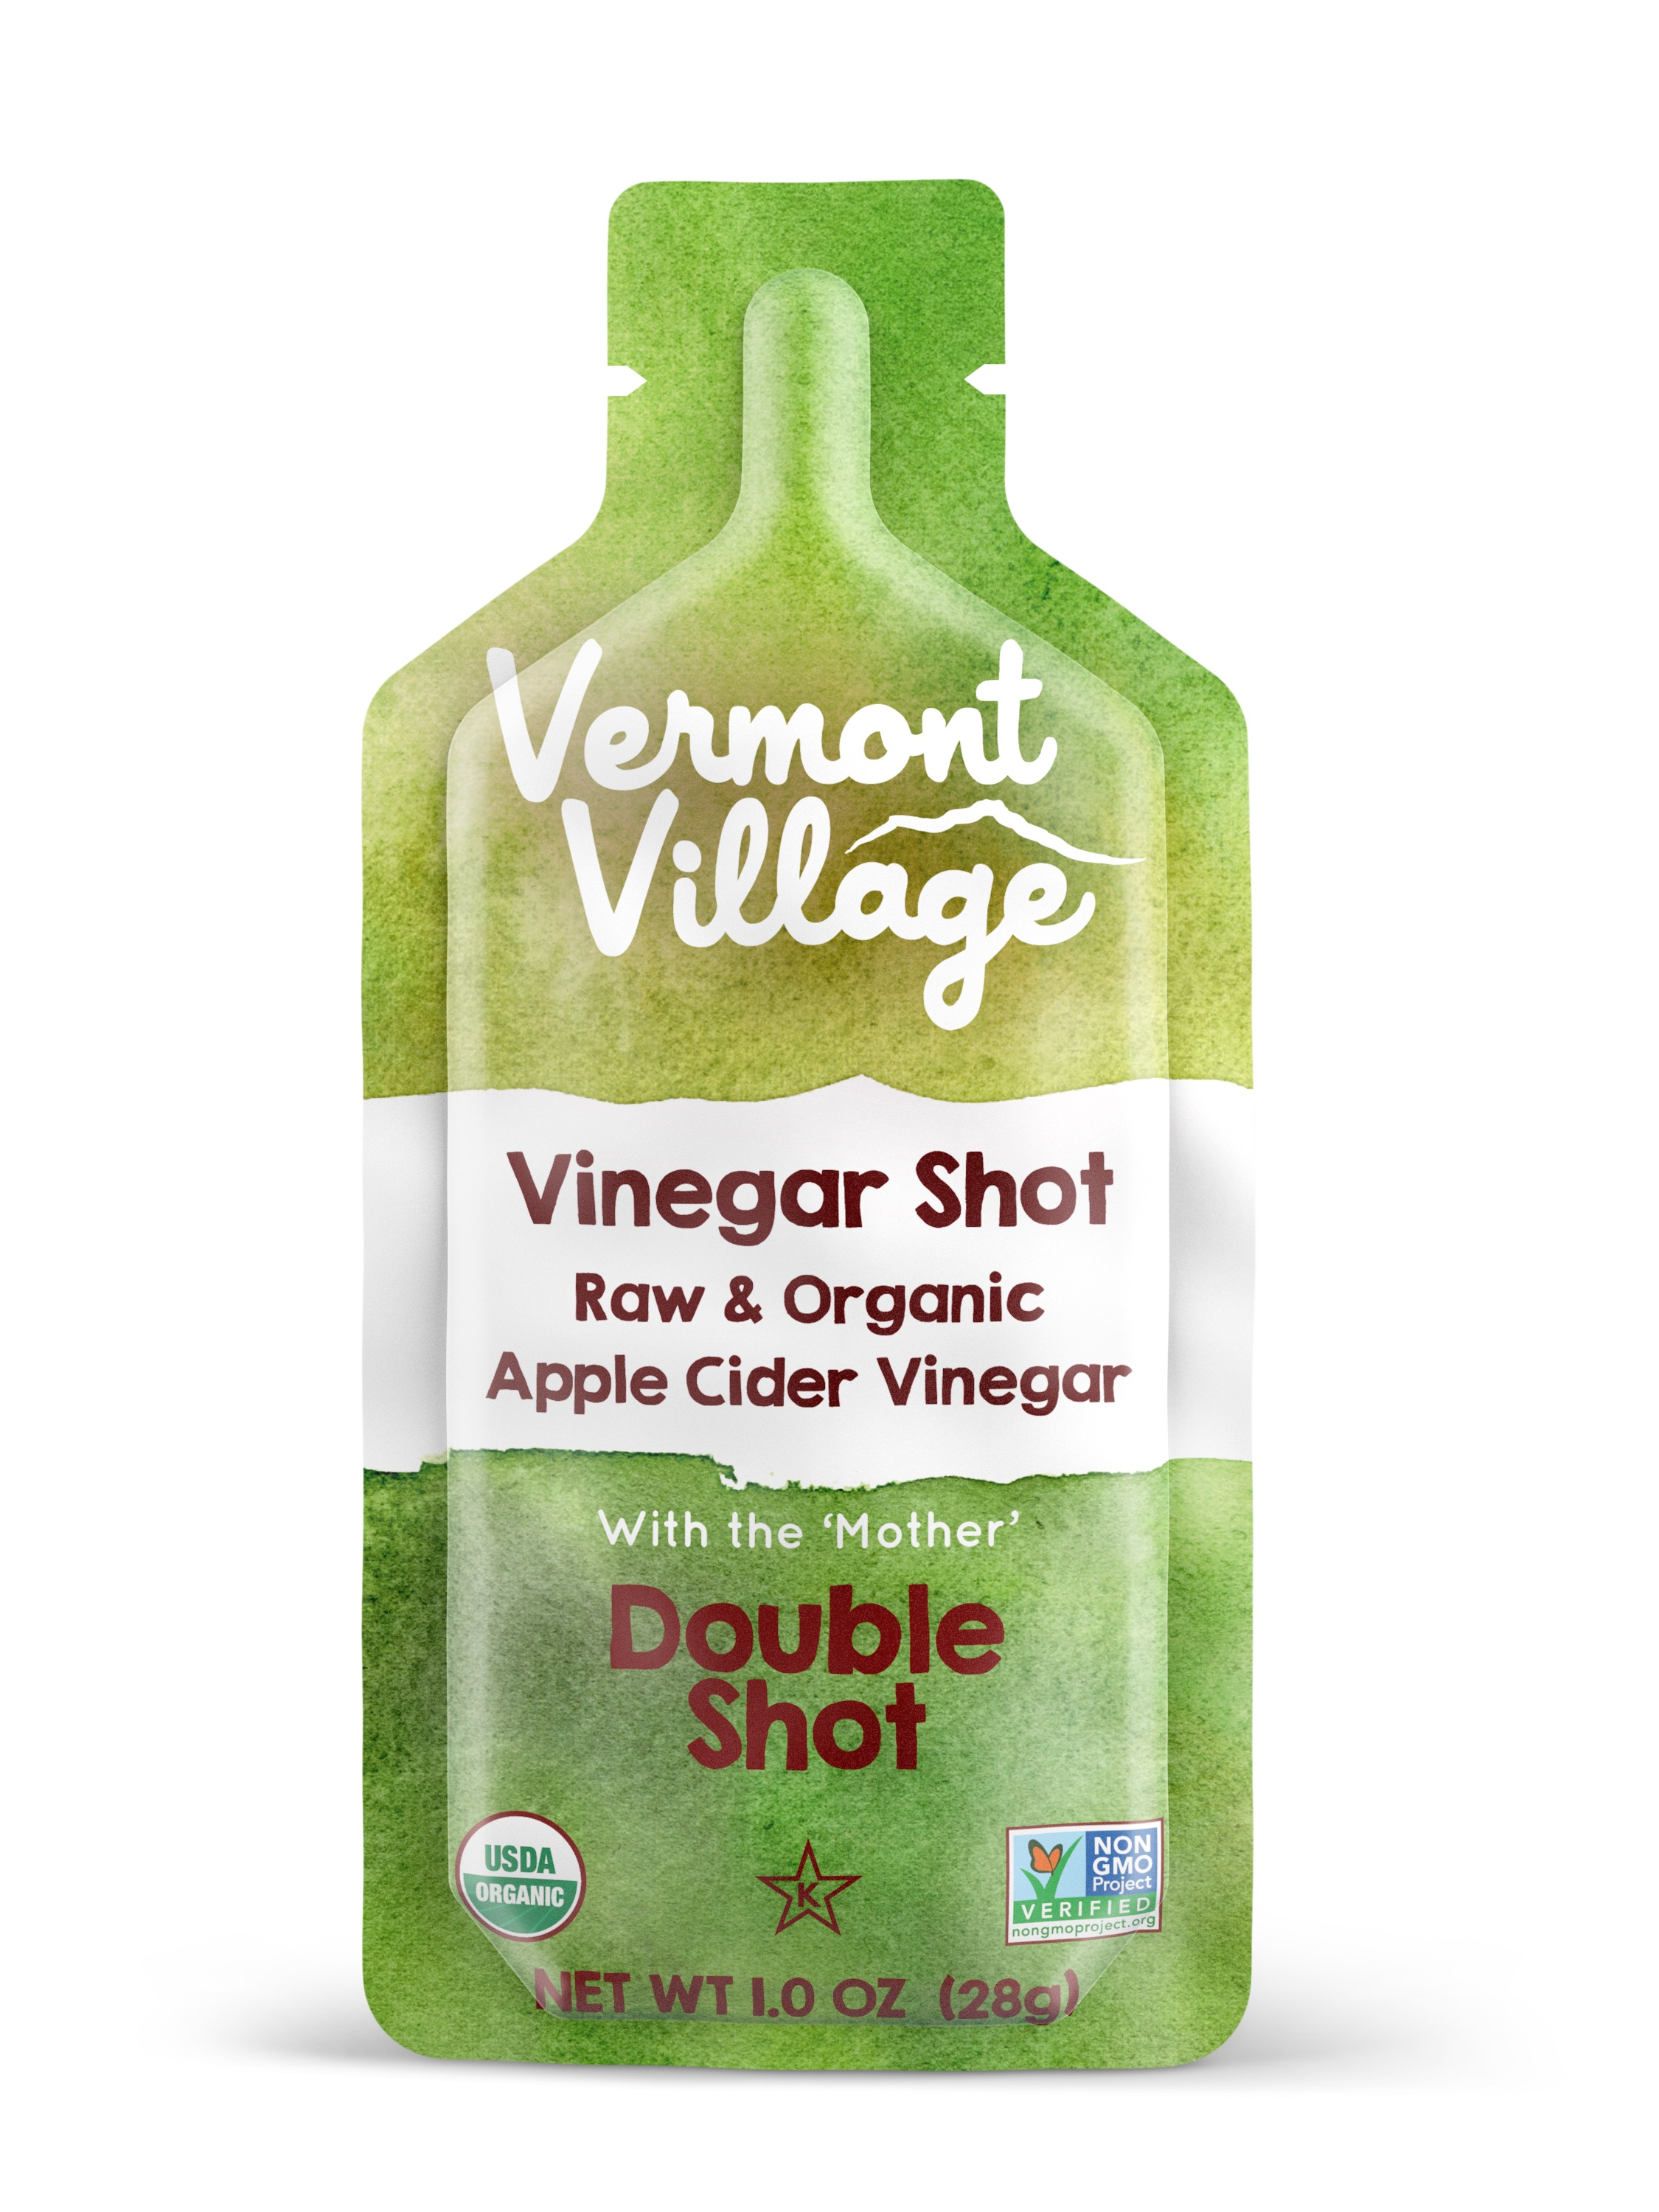 Raw Organic Apple Cider Vinegar Shot/Vermont Village